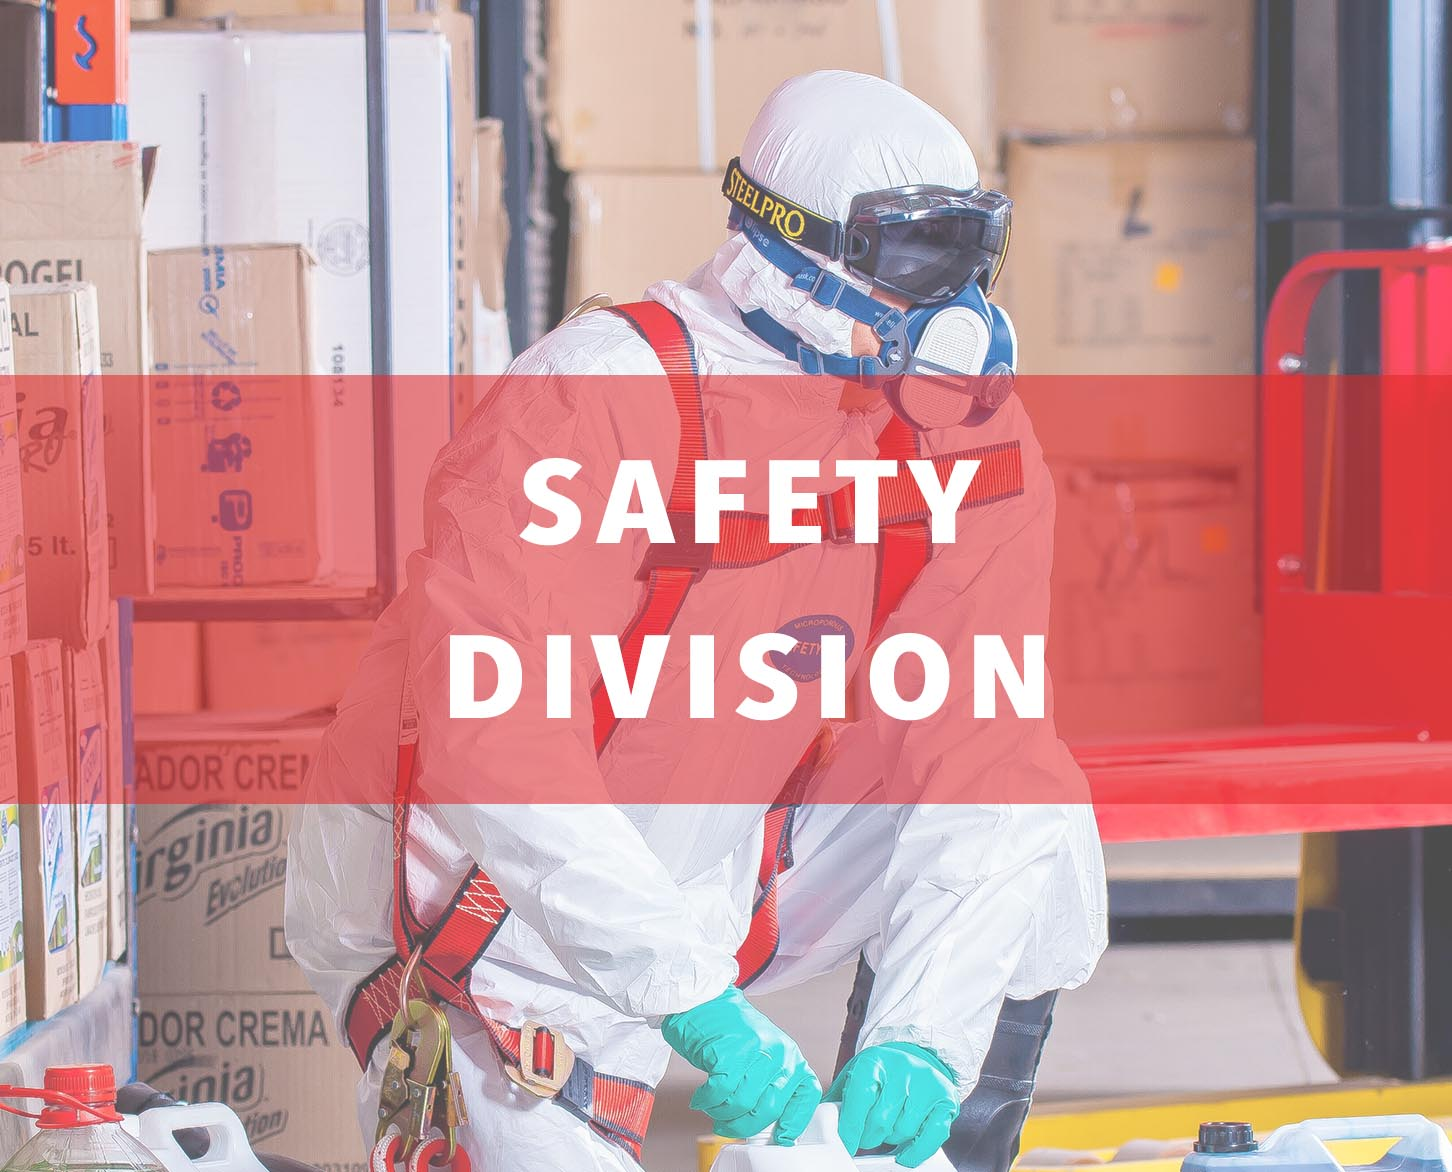 One of our fastest growing lines at Chu's Packaging Supplies is our safety division that includes industrial, medical, and food handling disposable products such as coveralls, bouffant caps, gloves, and face masks. We manufacturer all of these safety items at our own factory to control quality and maintain the best pricing for our customers. In addition to high quality disposable products, our safety division also includes industrial tapes such as barricade tape and vinyl aisle marking tape. We believe that safety comes first and we'll keep you safe.